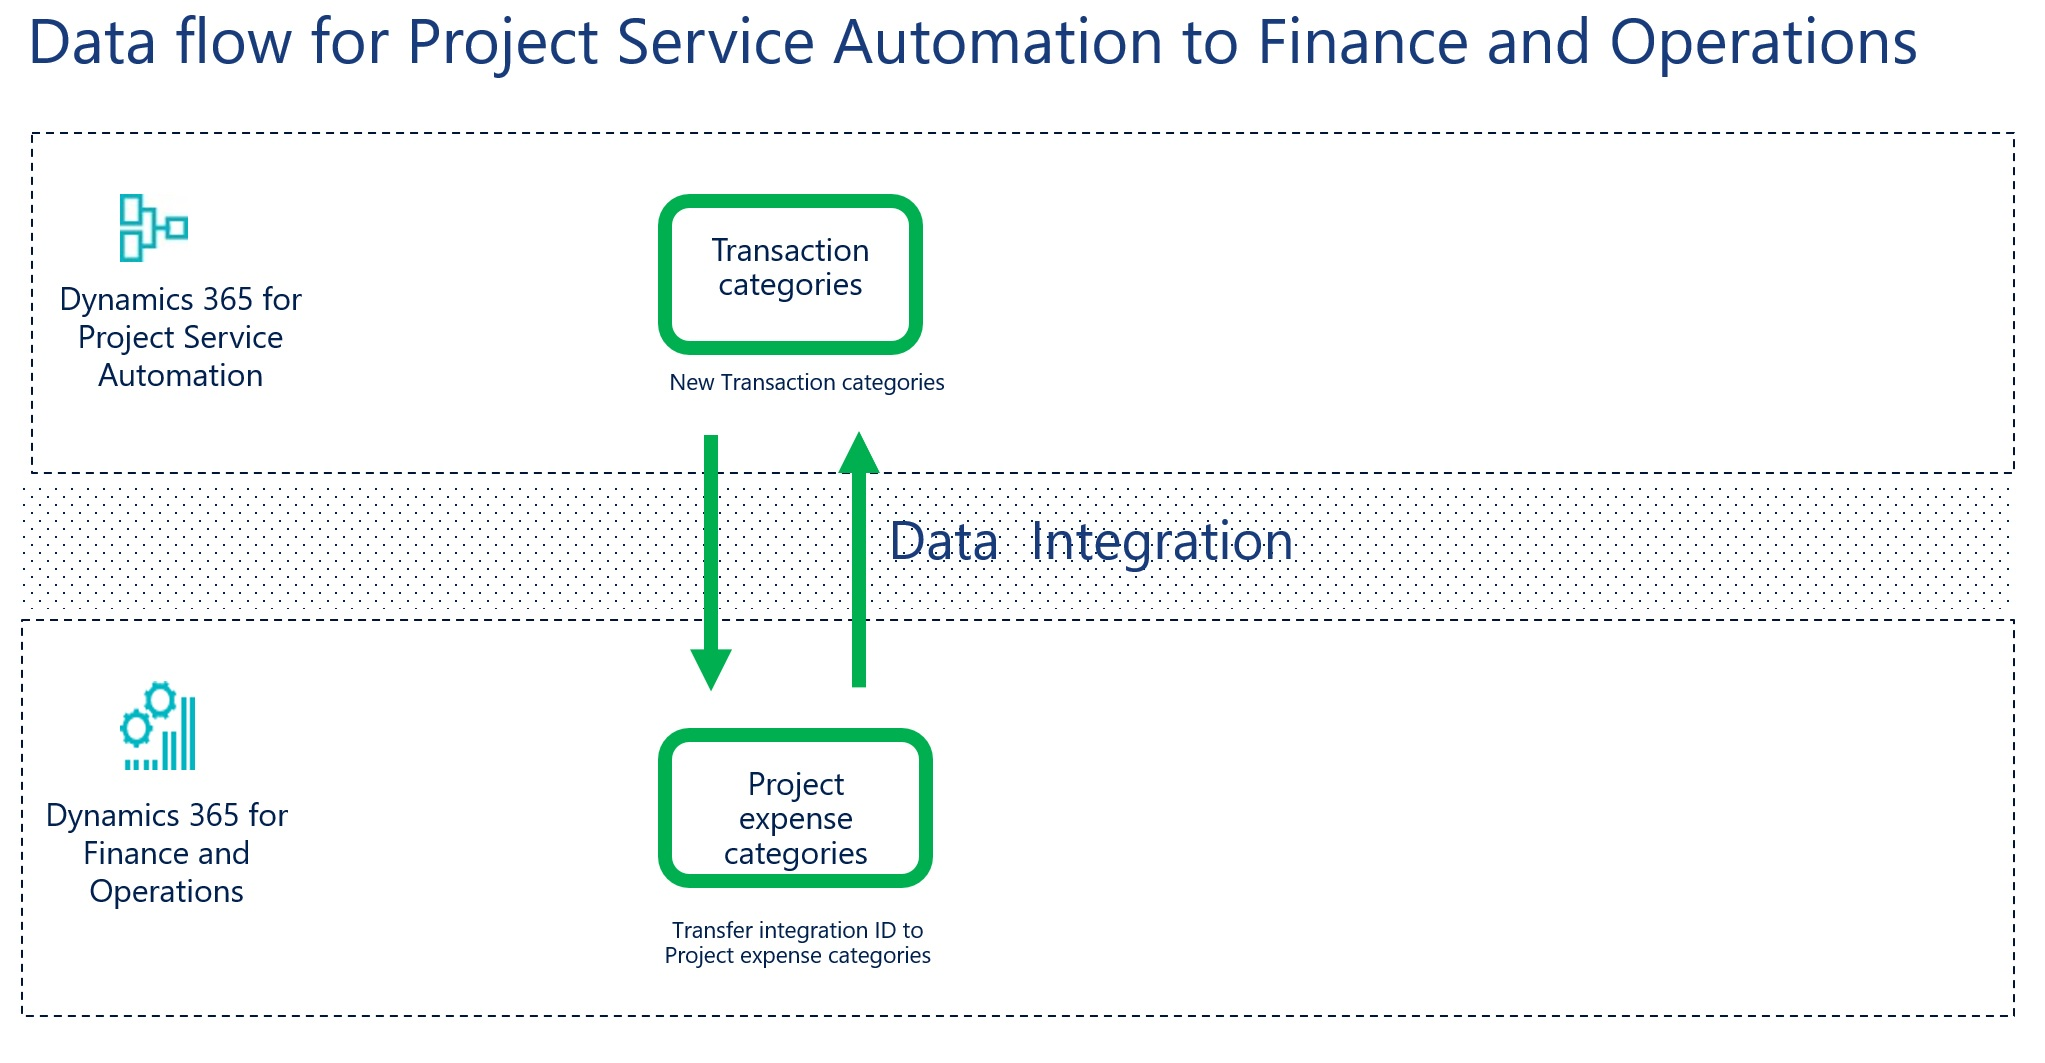 data flow for project service automation integration with finance and operations